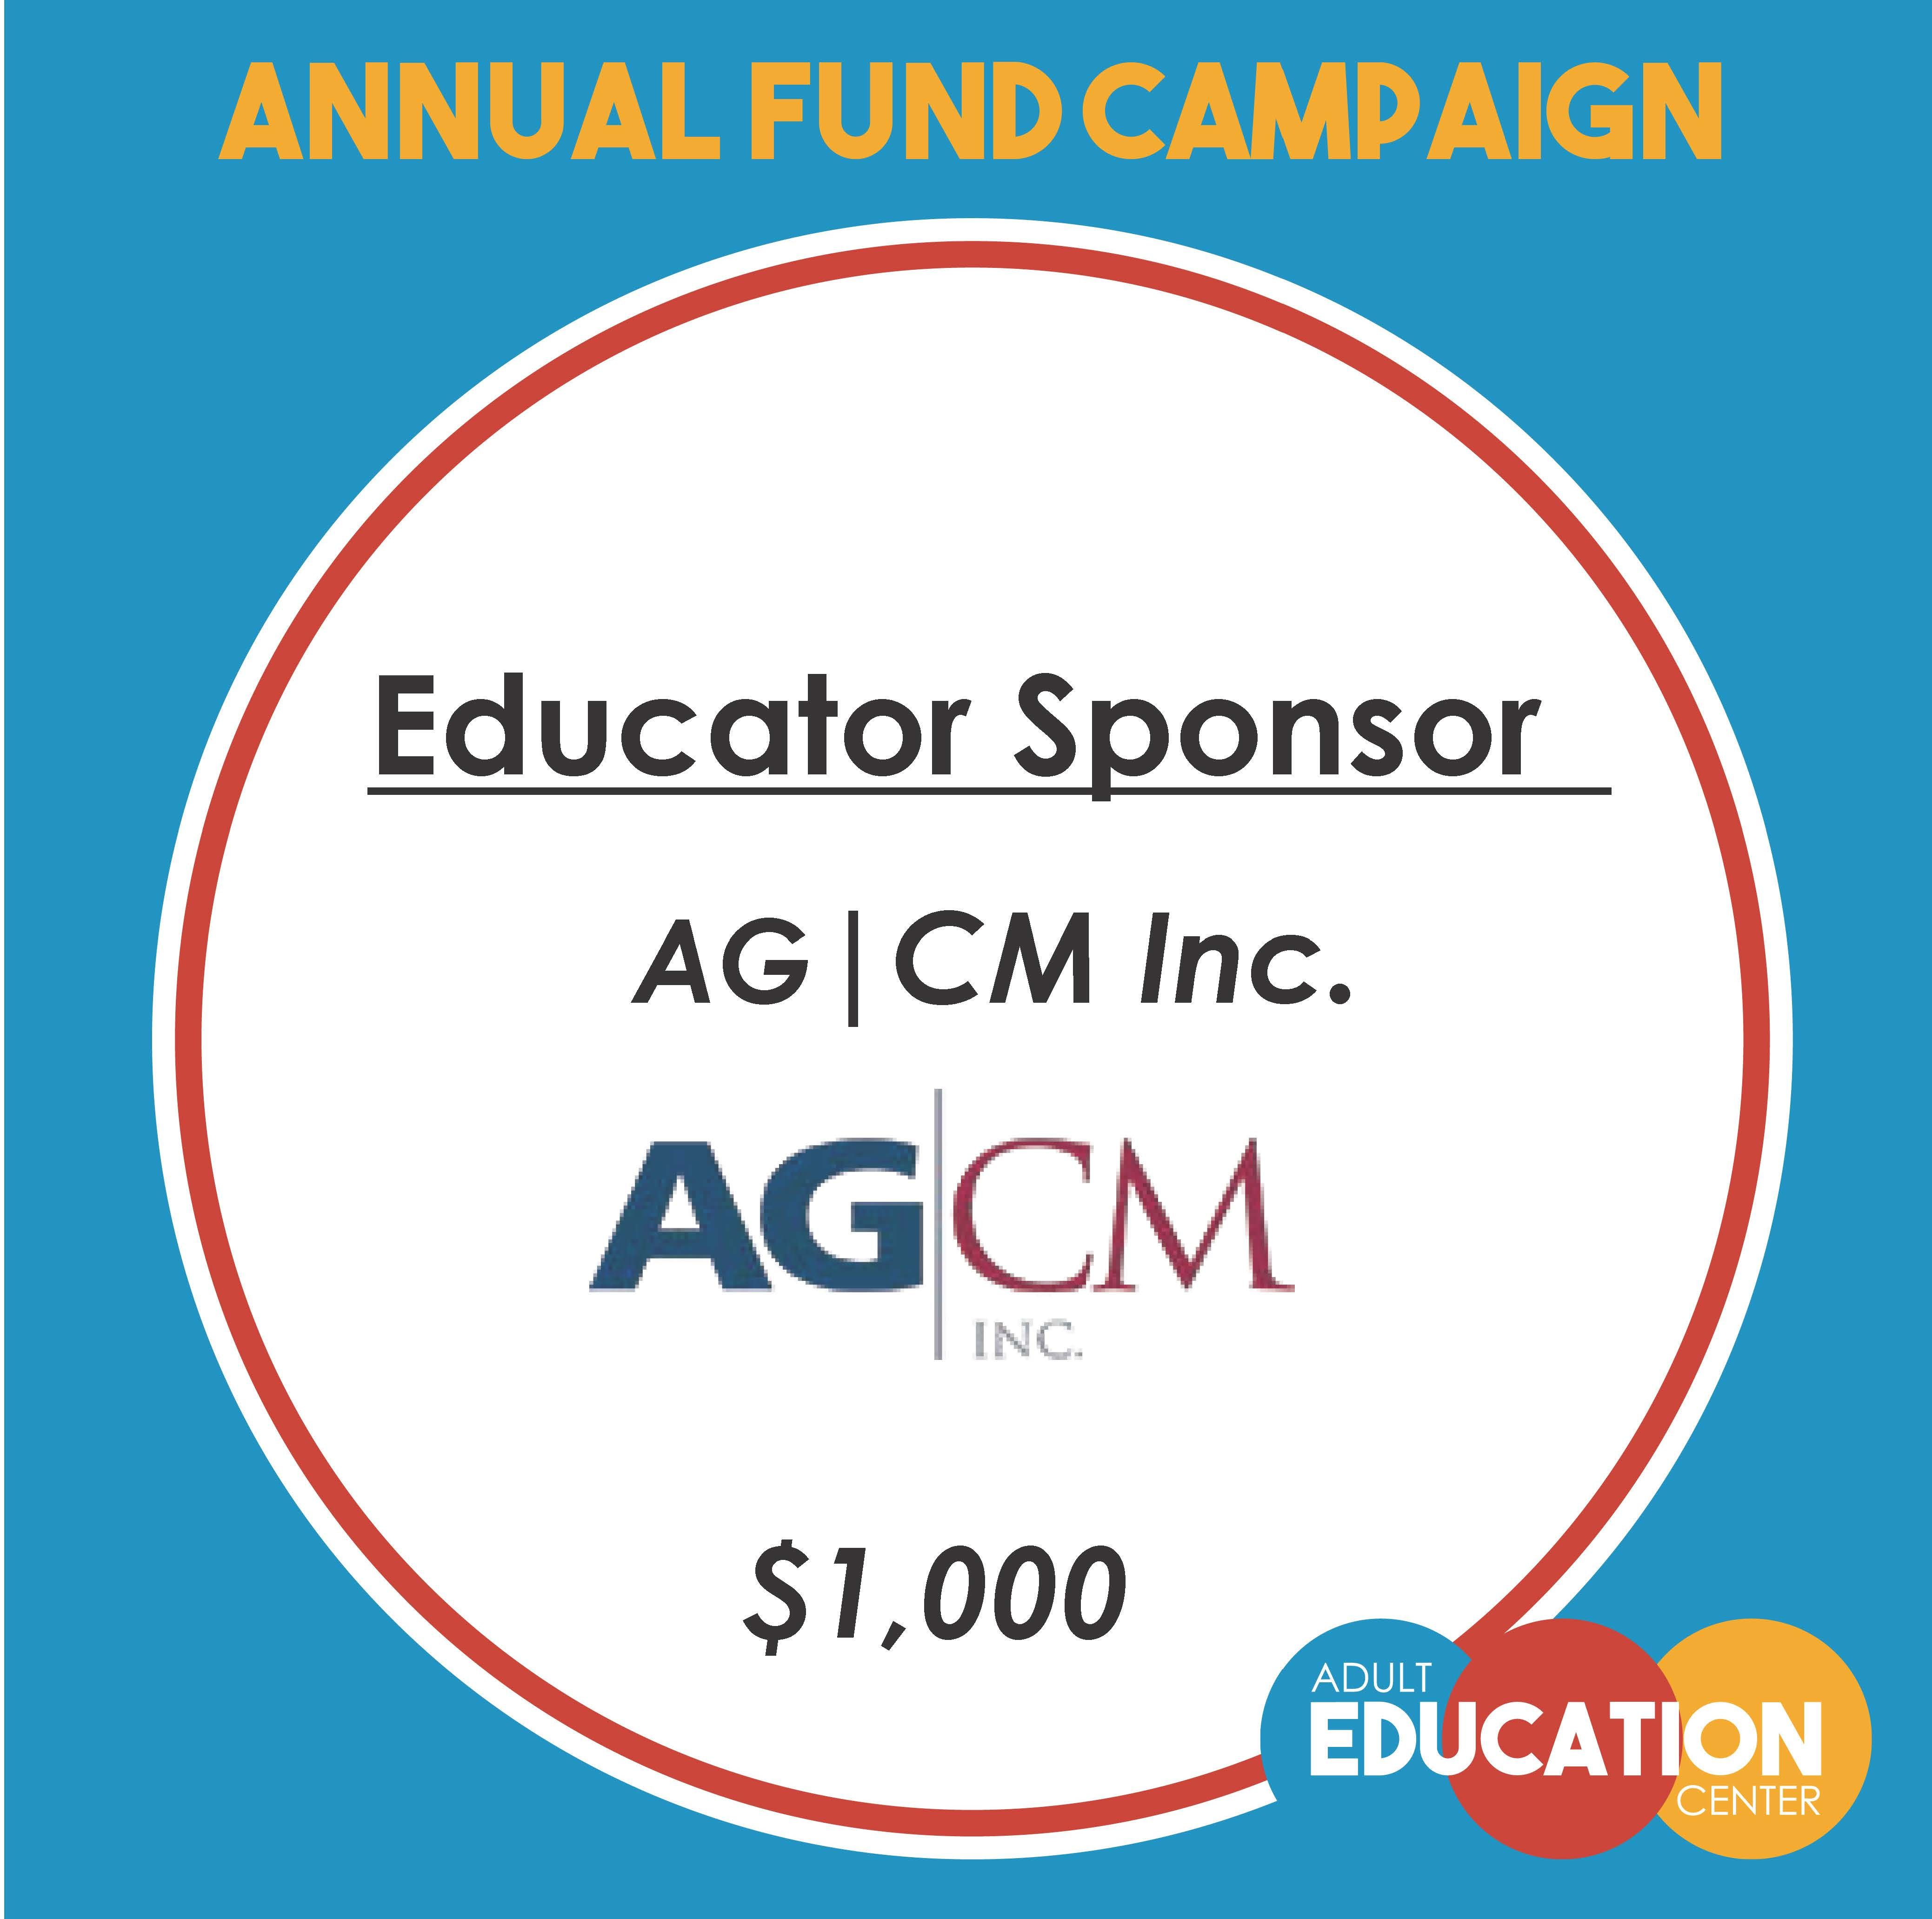 AG | CM Inc. - Educator Sponsor - $1,000